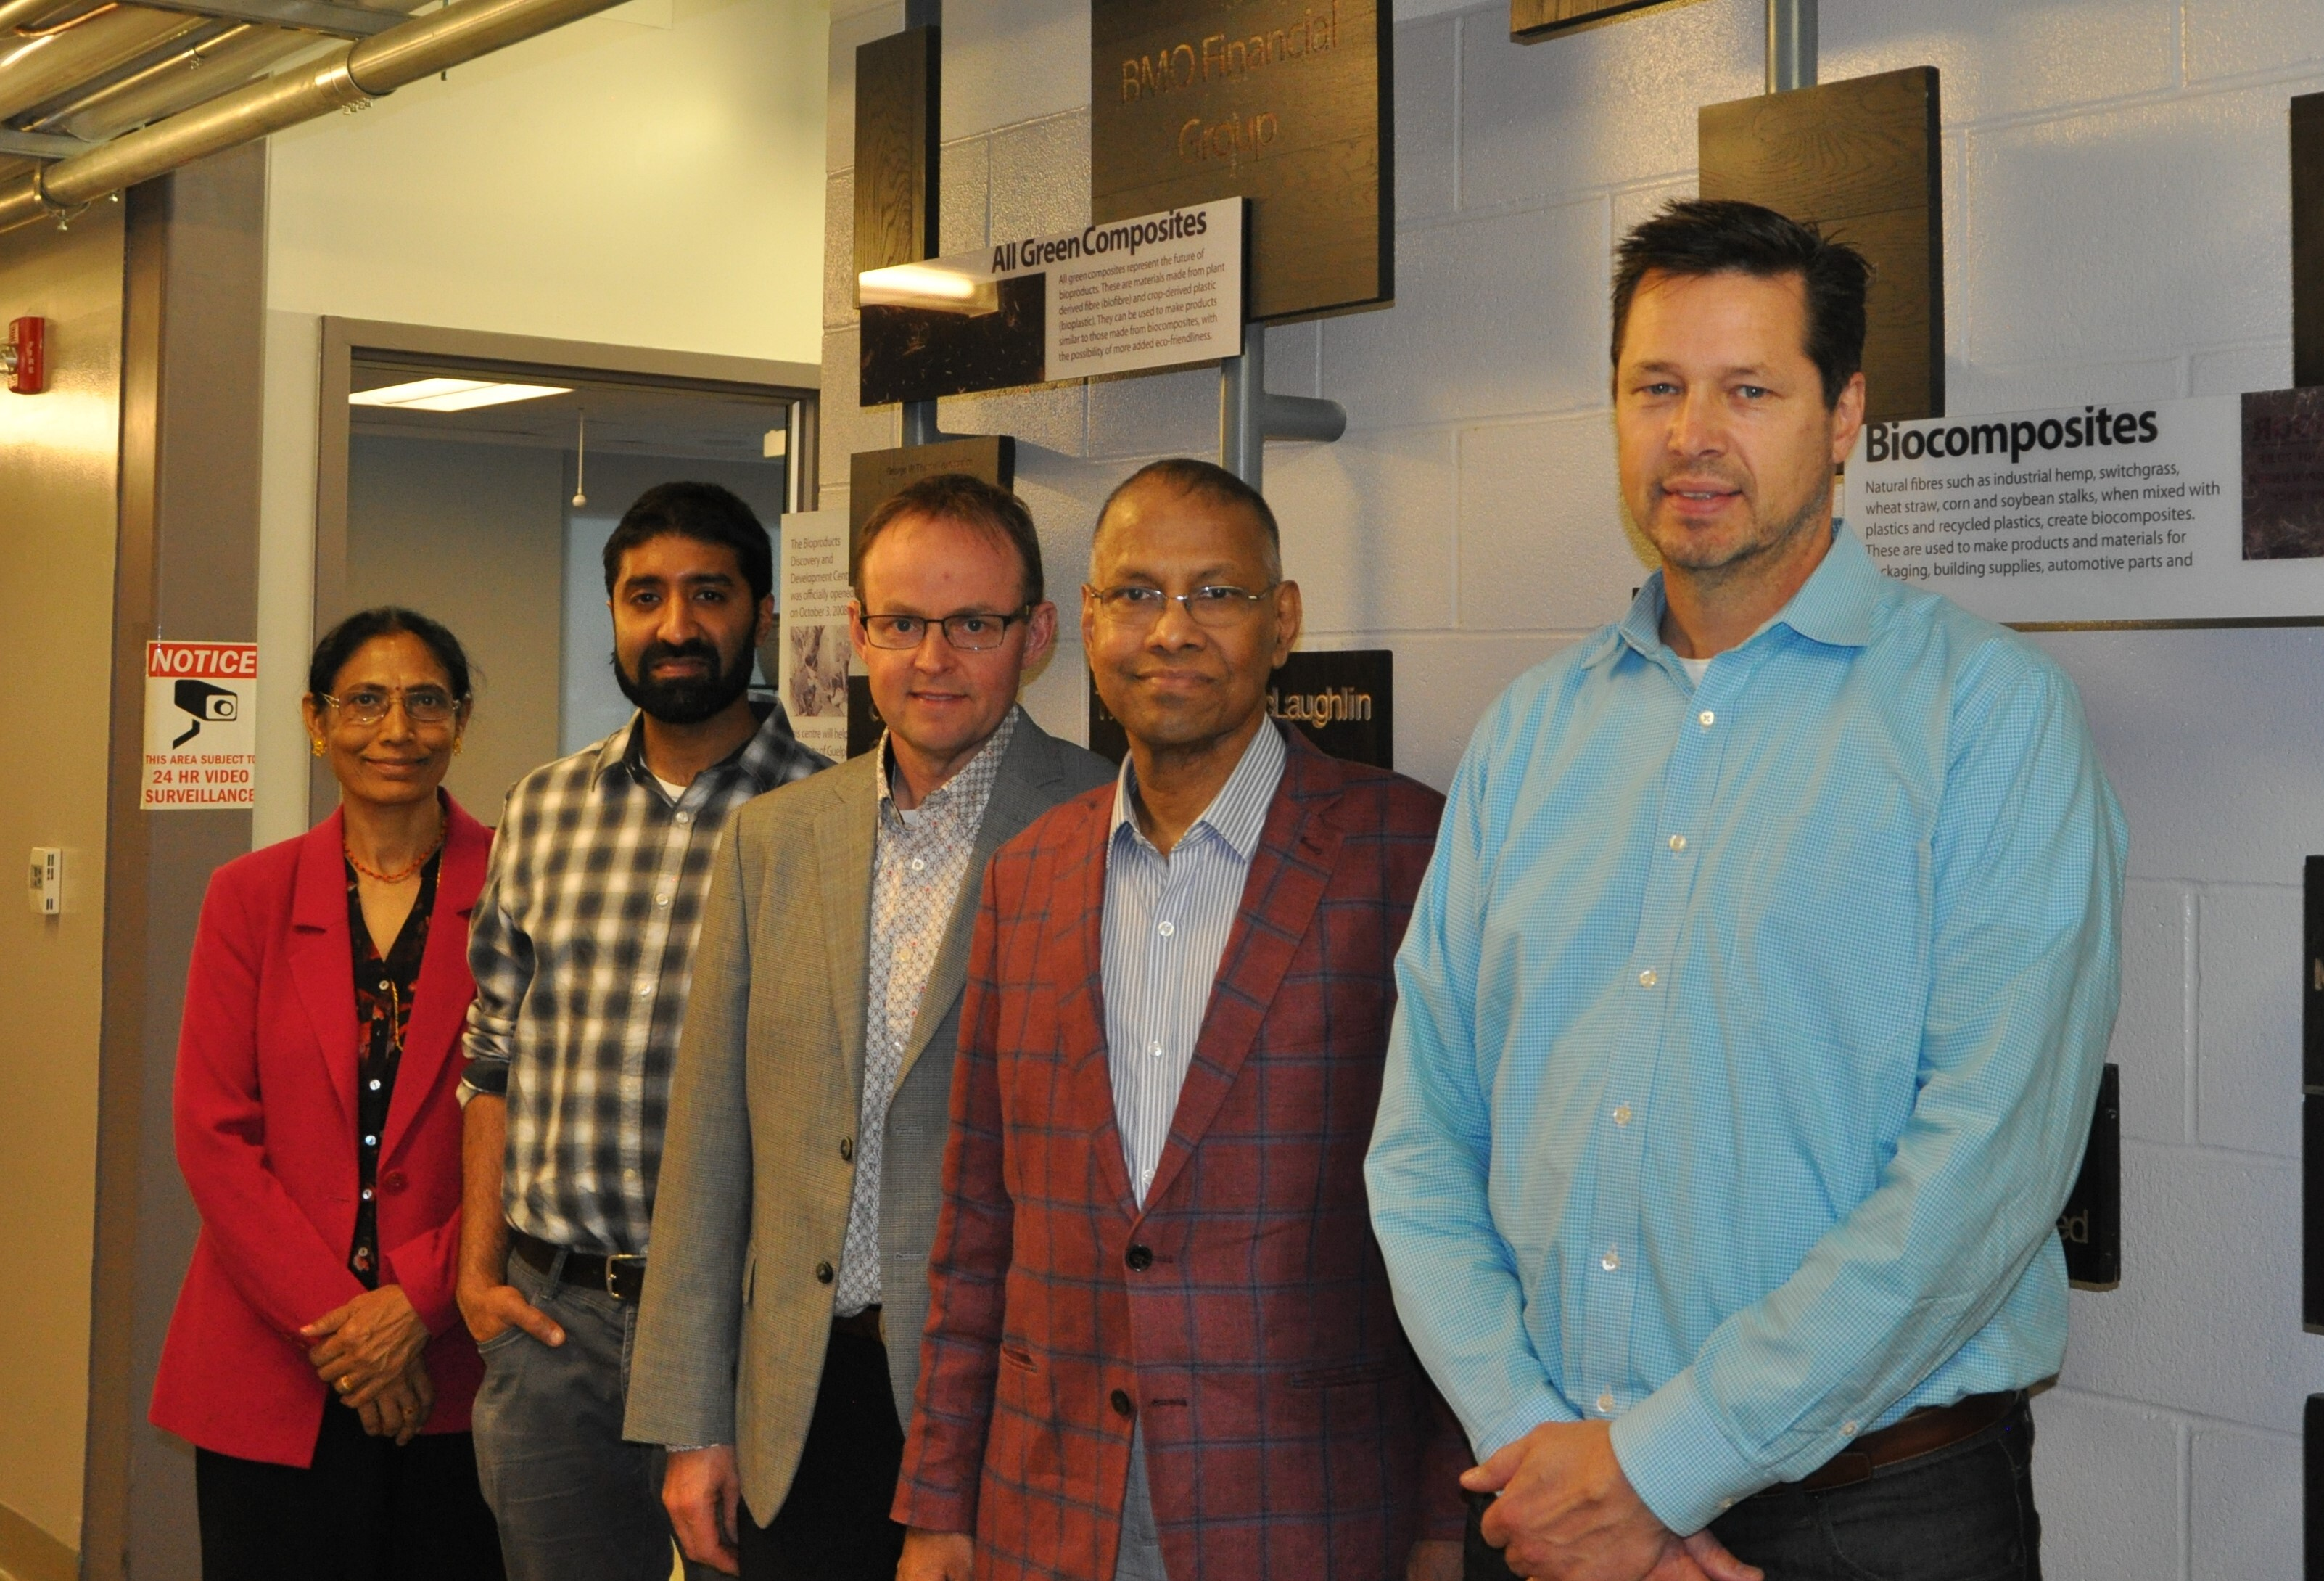 Image - Professors Amar Mohanty and Manjusri Misra with representatives from Ecosynthetix